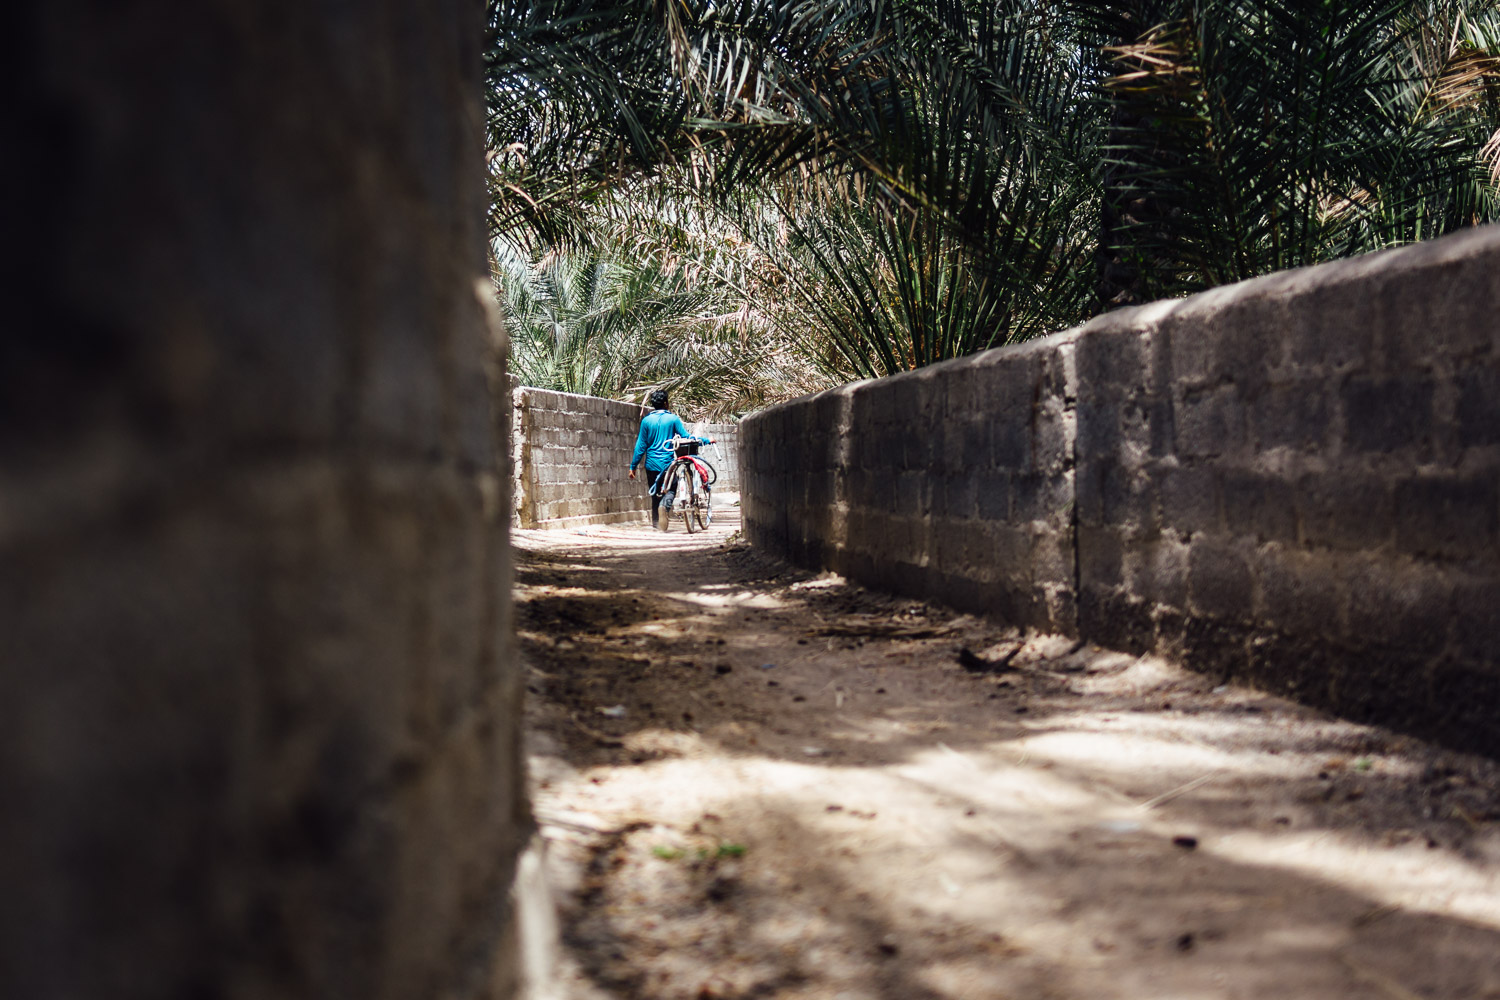 Walking-Tradition-Village-Oman-Daniel-Durazo-Photography-Durazophotography